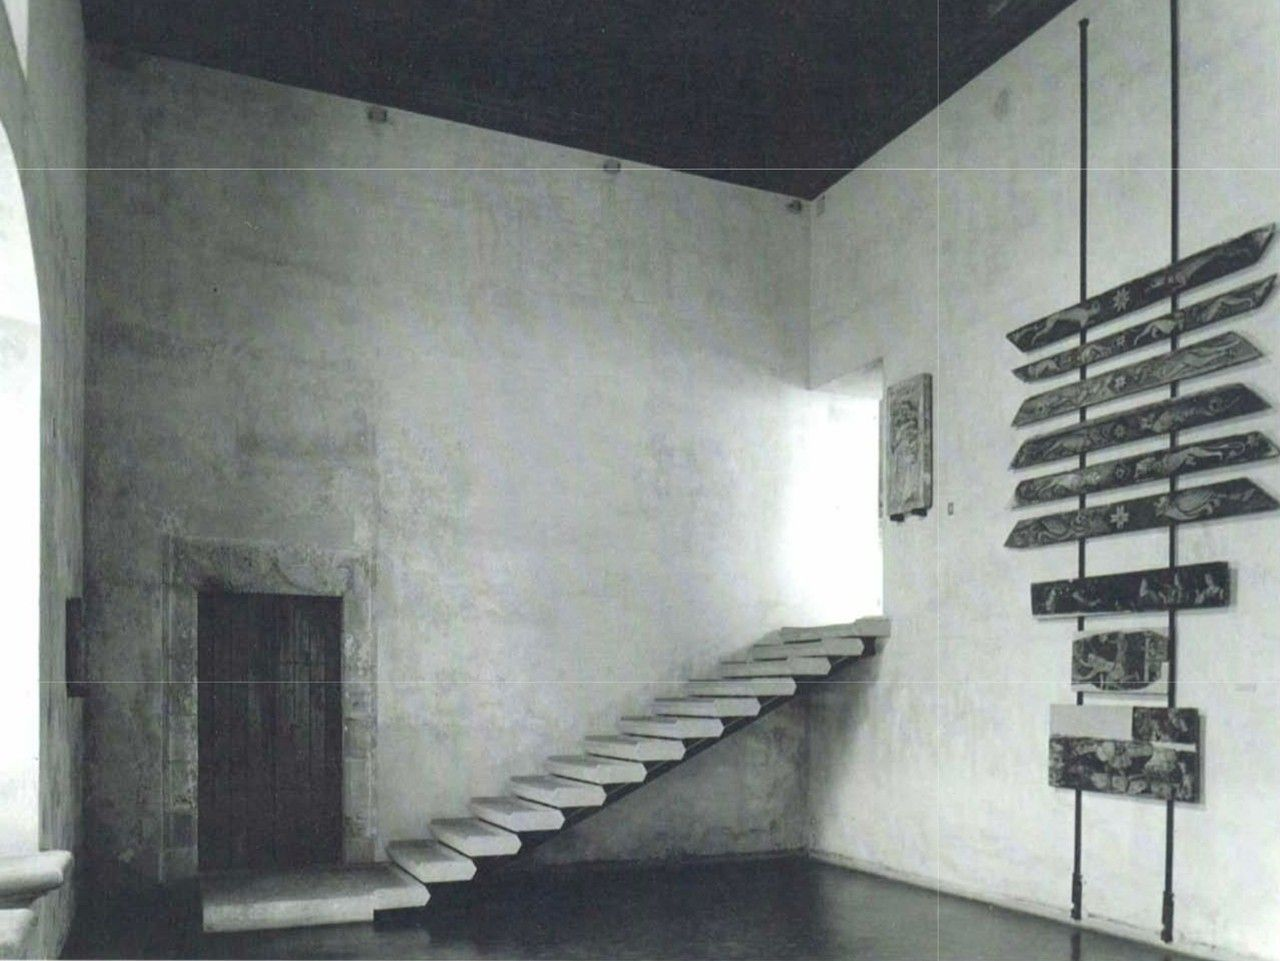 Carlo Scarpa. The exhibition design of Palazzo Abatellis in ... on post wwii homes, 17th century homes, ming dynasty homes, sixteenth century homes, 14th century homes, 11th century homes, middle ages homes, 12th century homes, 19th century homes, 18th century homes, 1850's homes, 10th century homes, nineteenth century homes, first century homes, 2nd century homes, seventies homes, 5th century homes, europe homes, 16 century homes, 21th century homes,